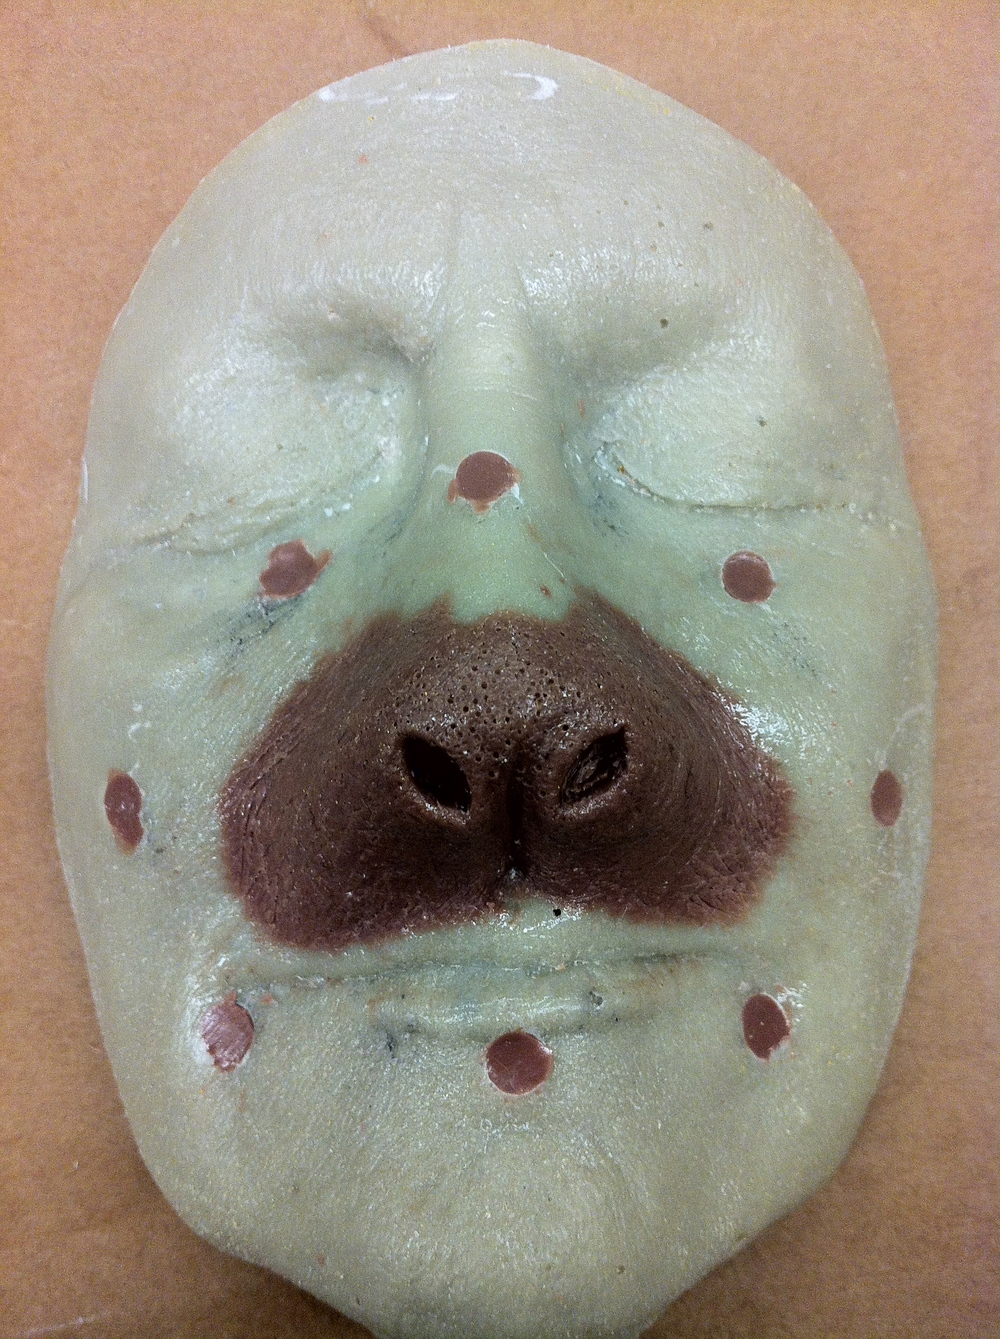 Nose sculpt in progress for Mrs. Barabe